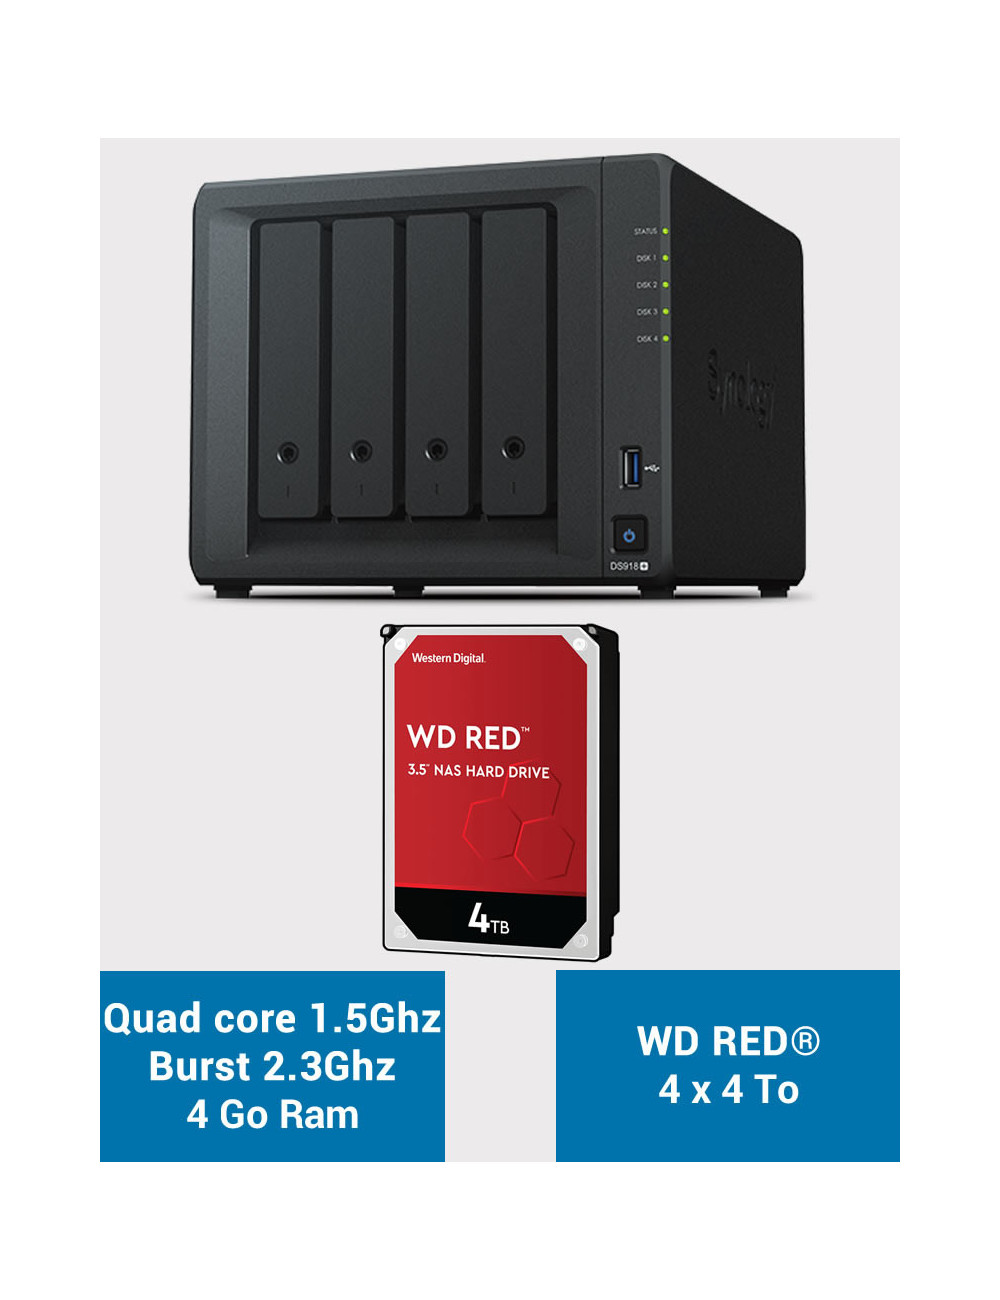 Synology DS918+ NAS Server WD RED 16TB (4x4TB)